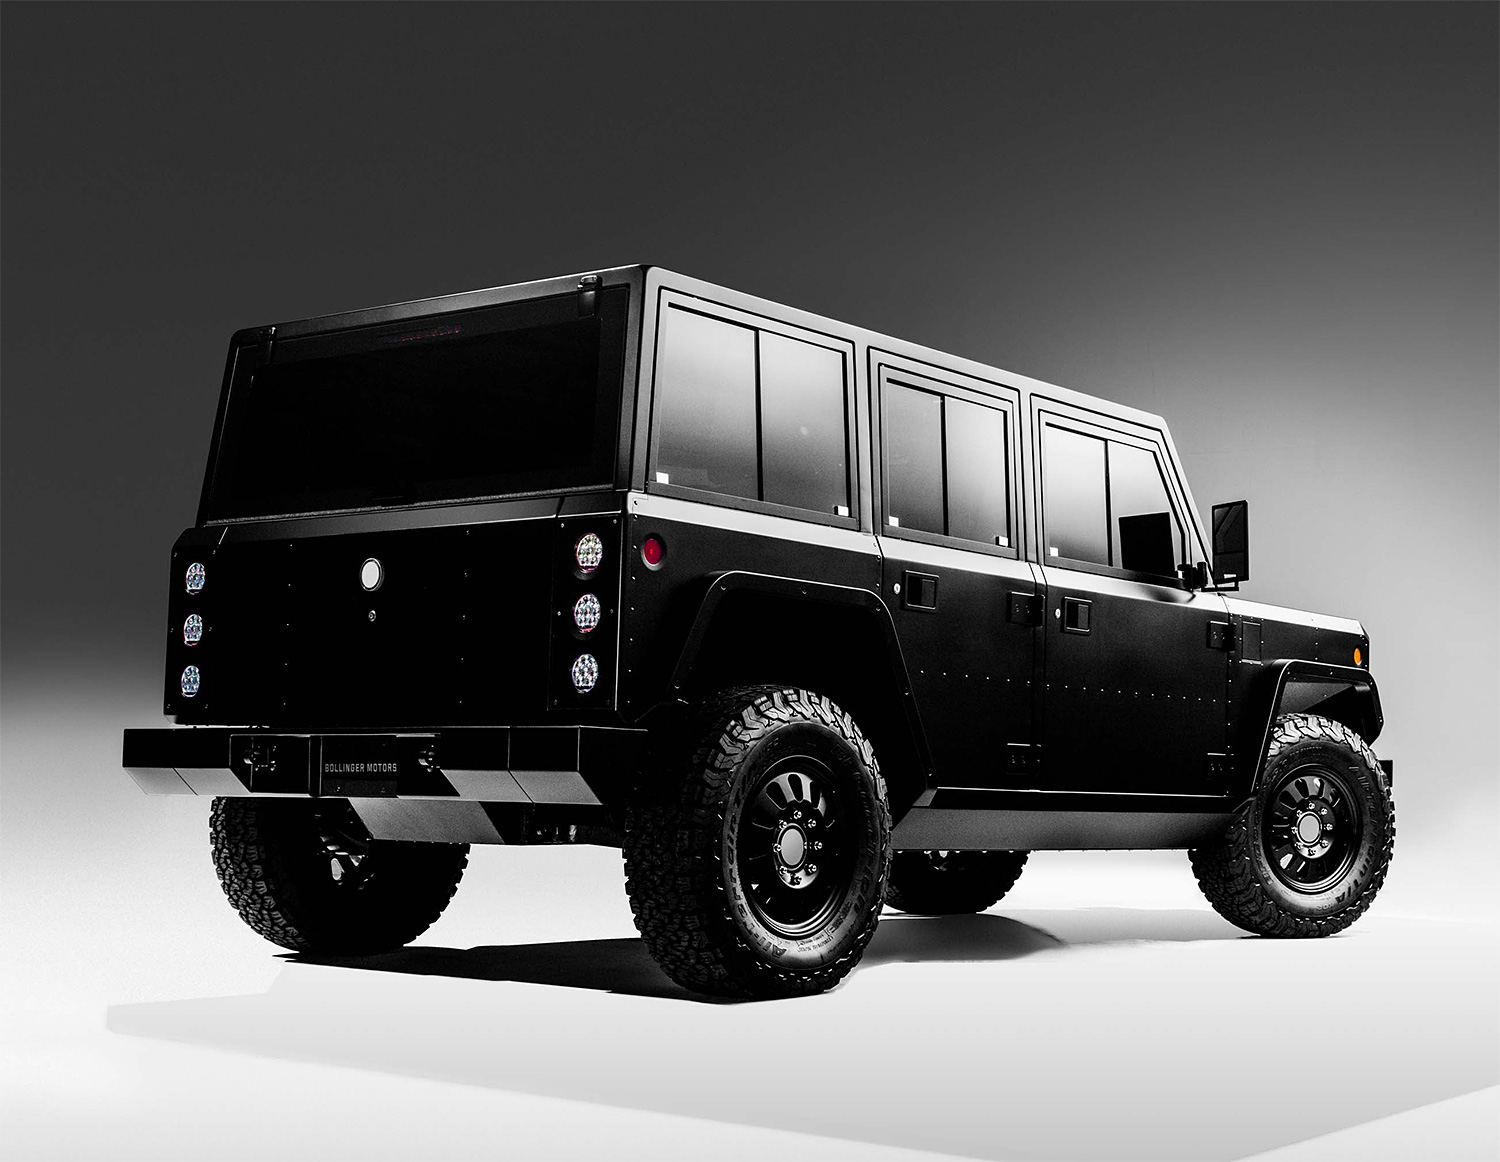 The Bollinger B1 is the All-Electric SUV We've Been Waiting For at werd.com